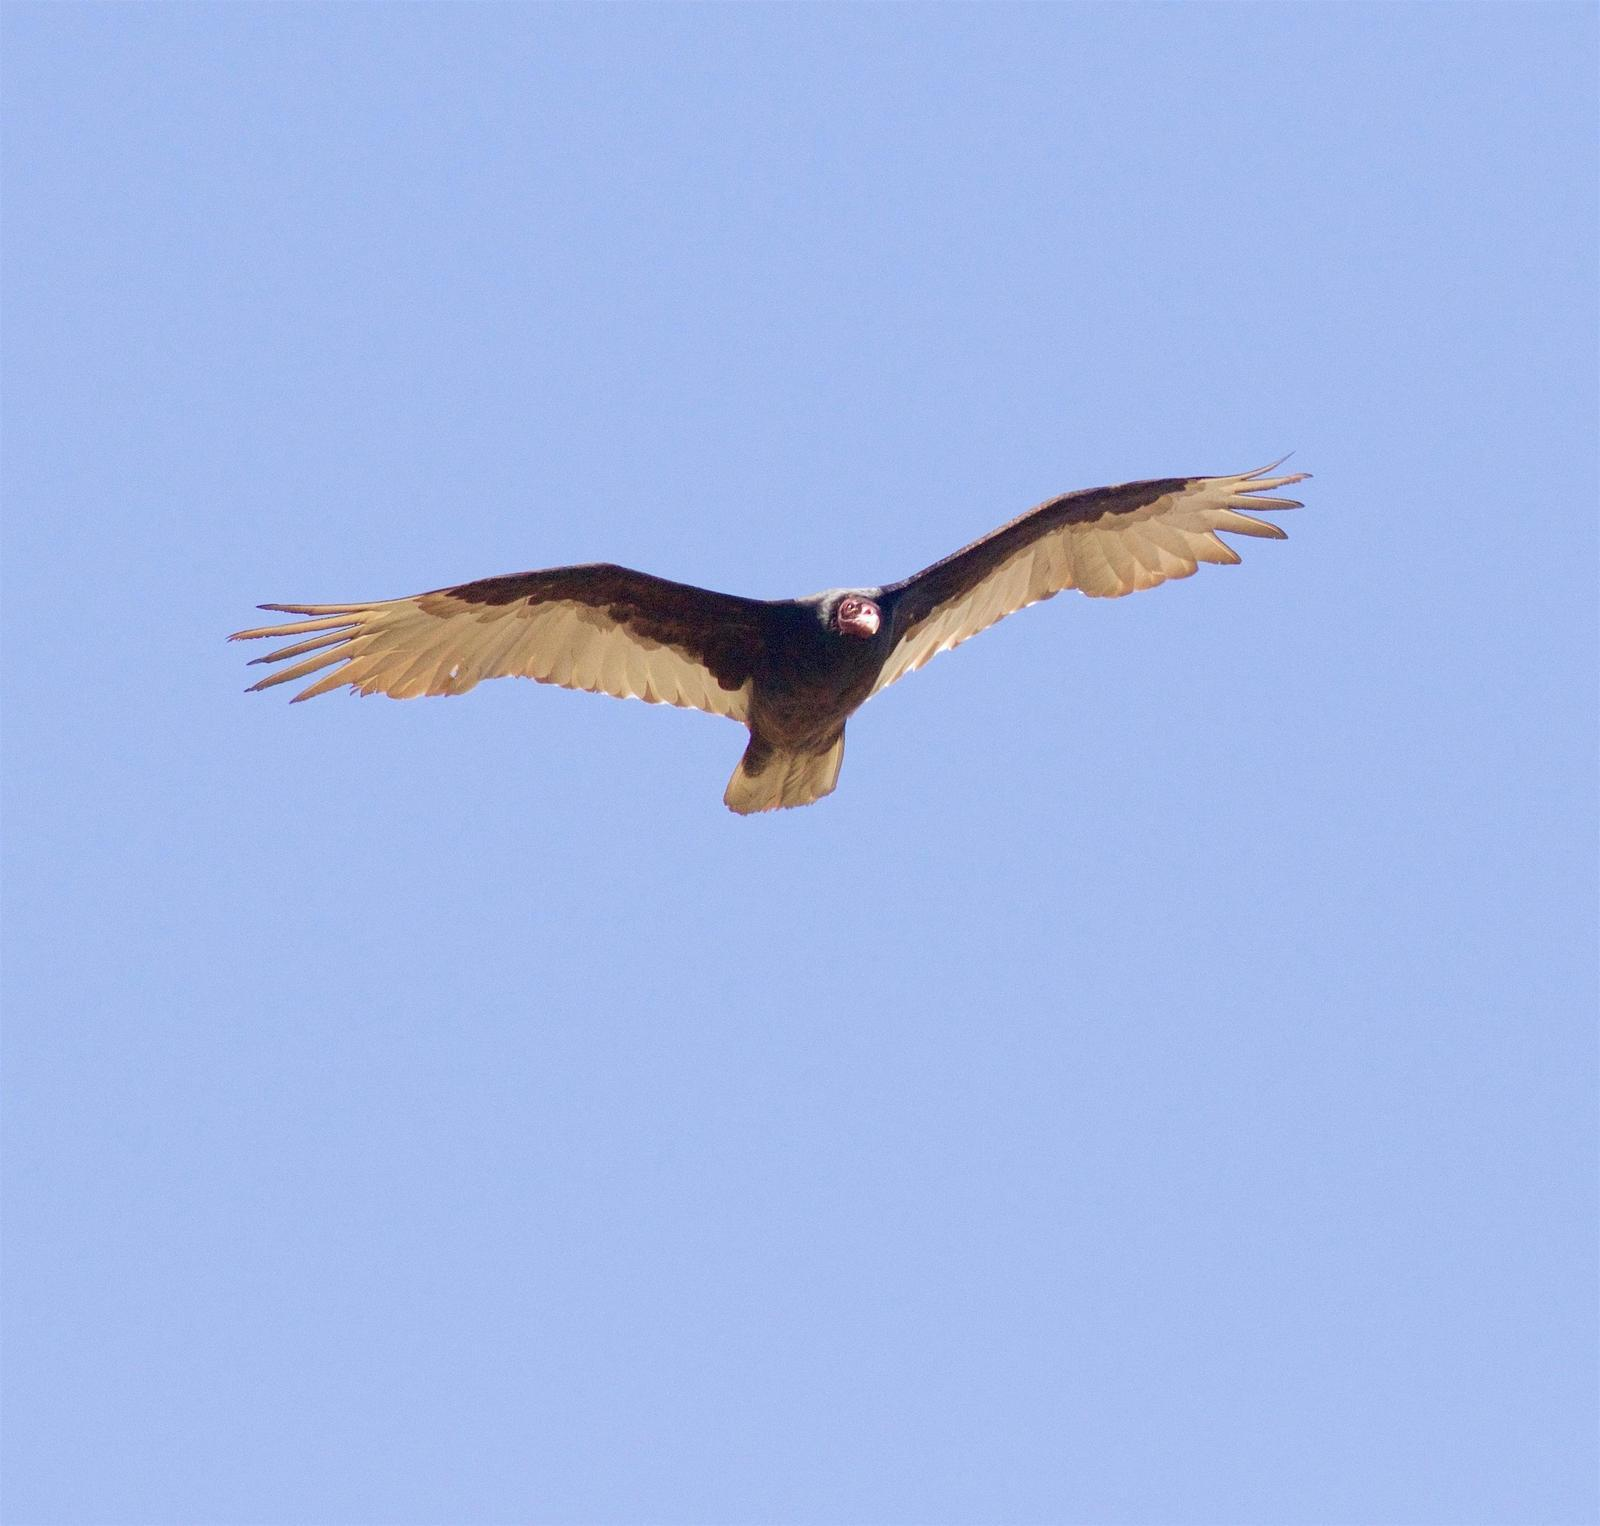 Turkey Vulture Photo by Kathryn Keith